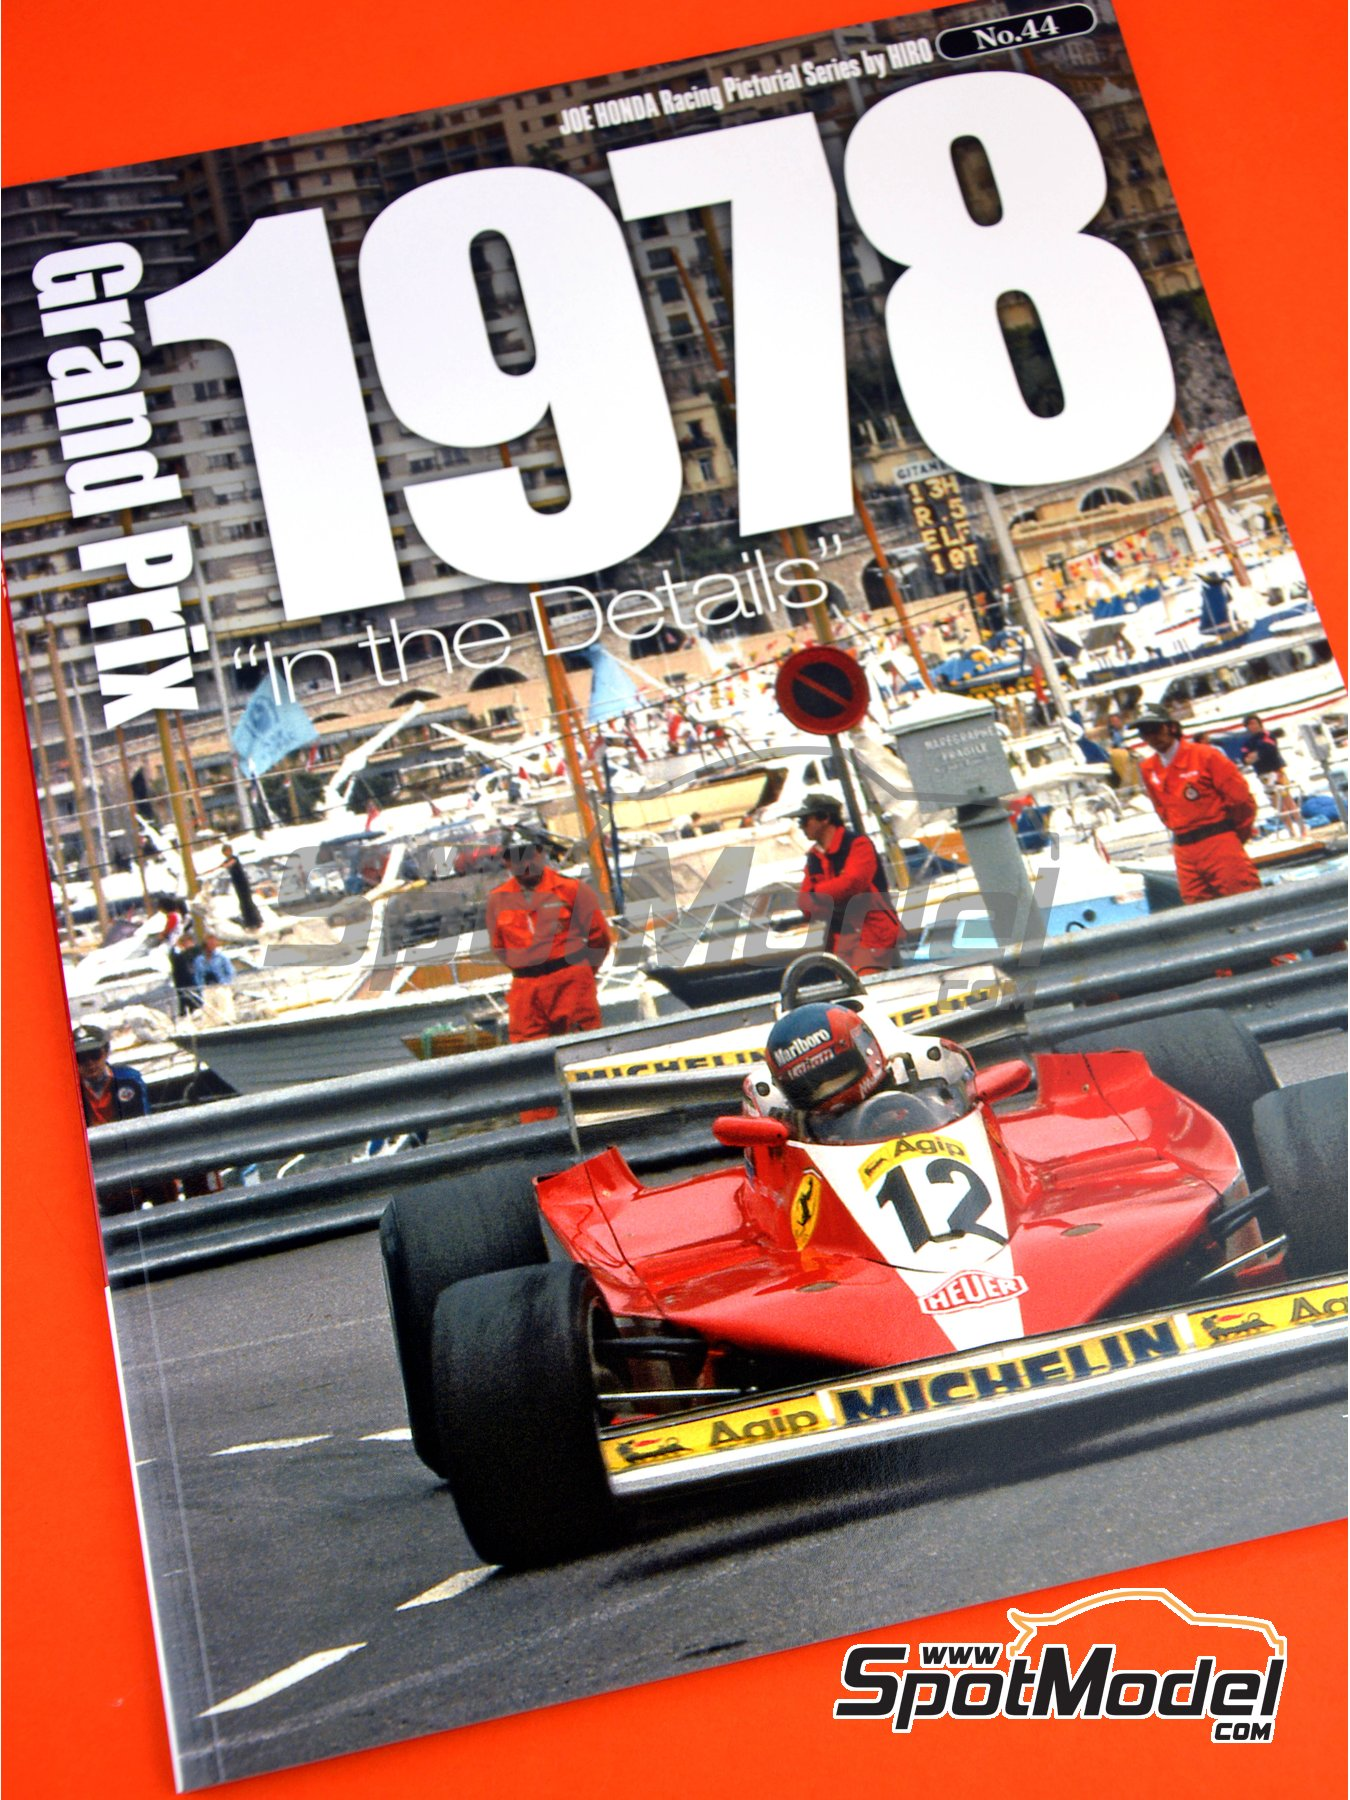 Joe Honda Racing Pictorial Series: Grand Prix - FIA Formula 1 World Championship 1978 | Reference / walkaround book manufactured by Model Factory Hiro (ref. MFH-JH44) image